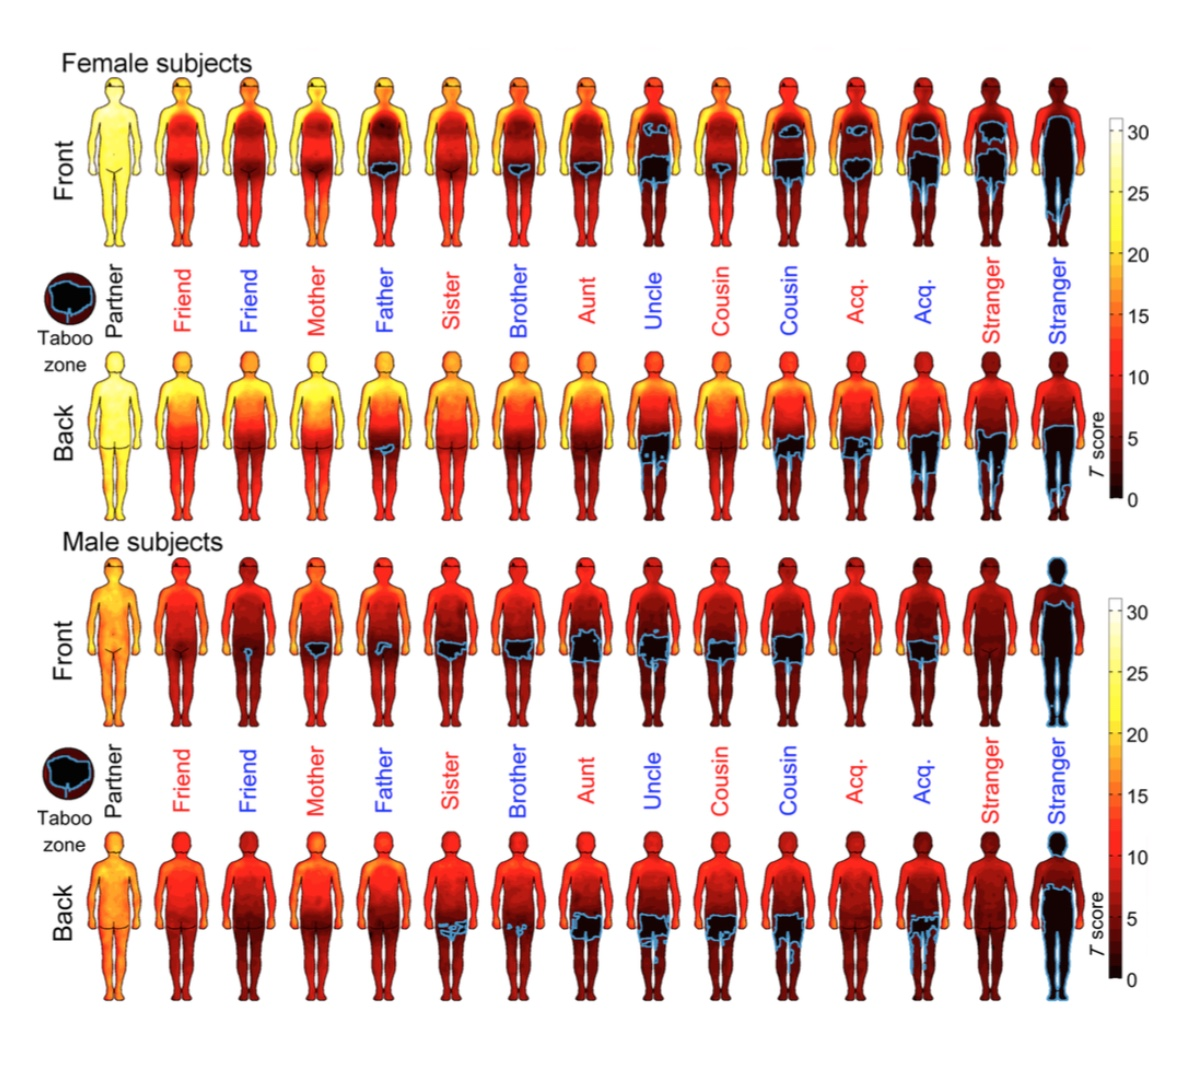 Body map of awkwardness of physical contact